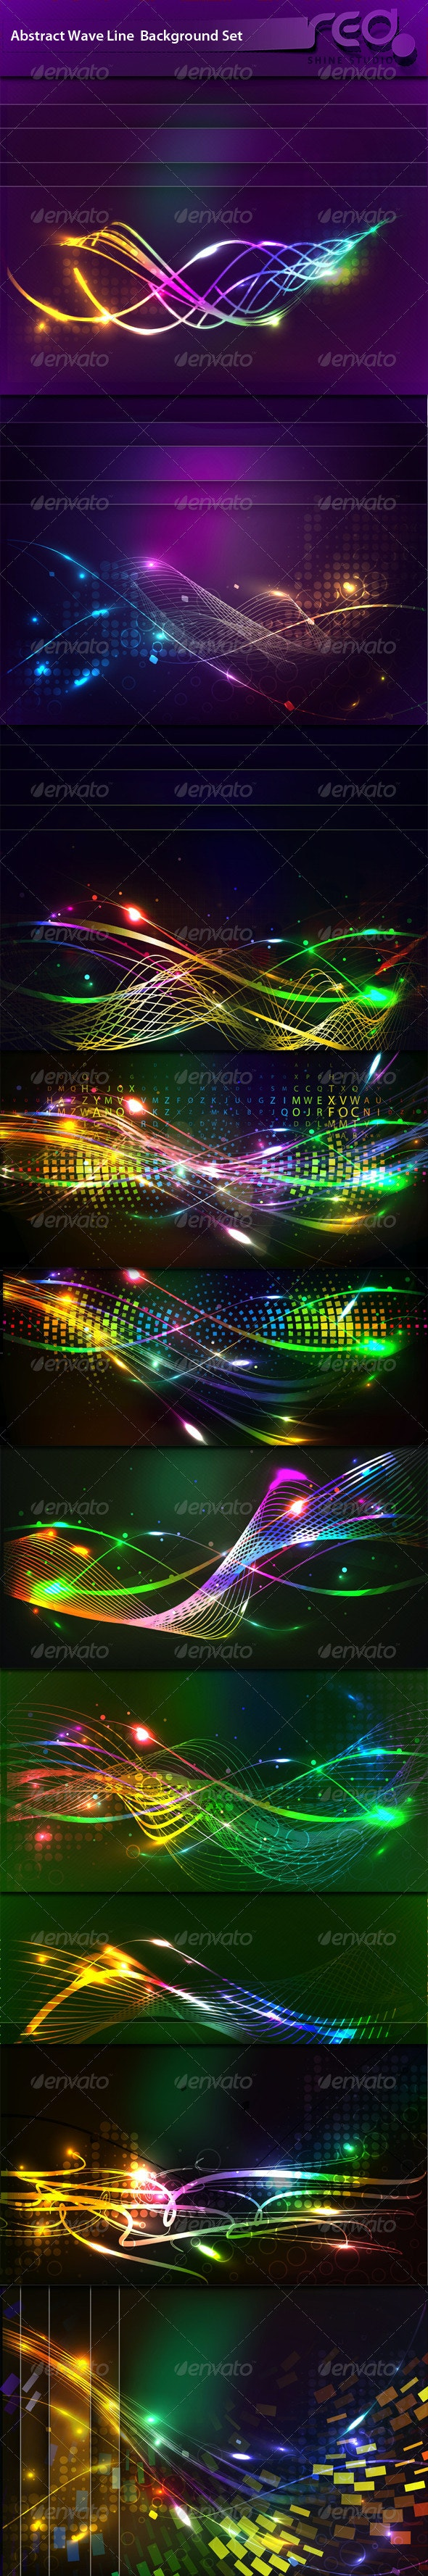 Abstract Glowing Wave Line Background - Backgrounds Decorative